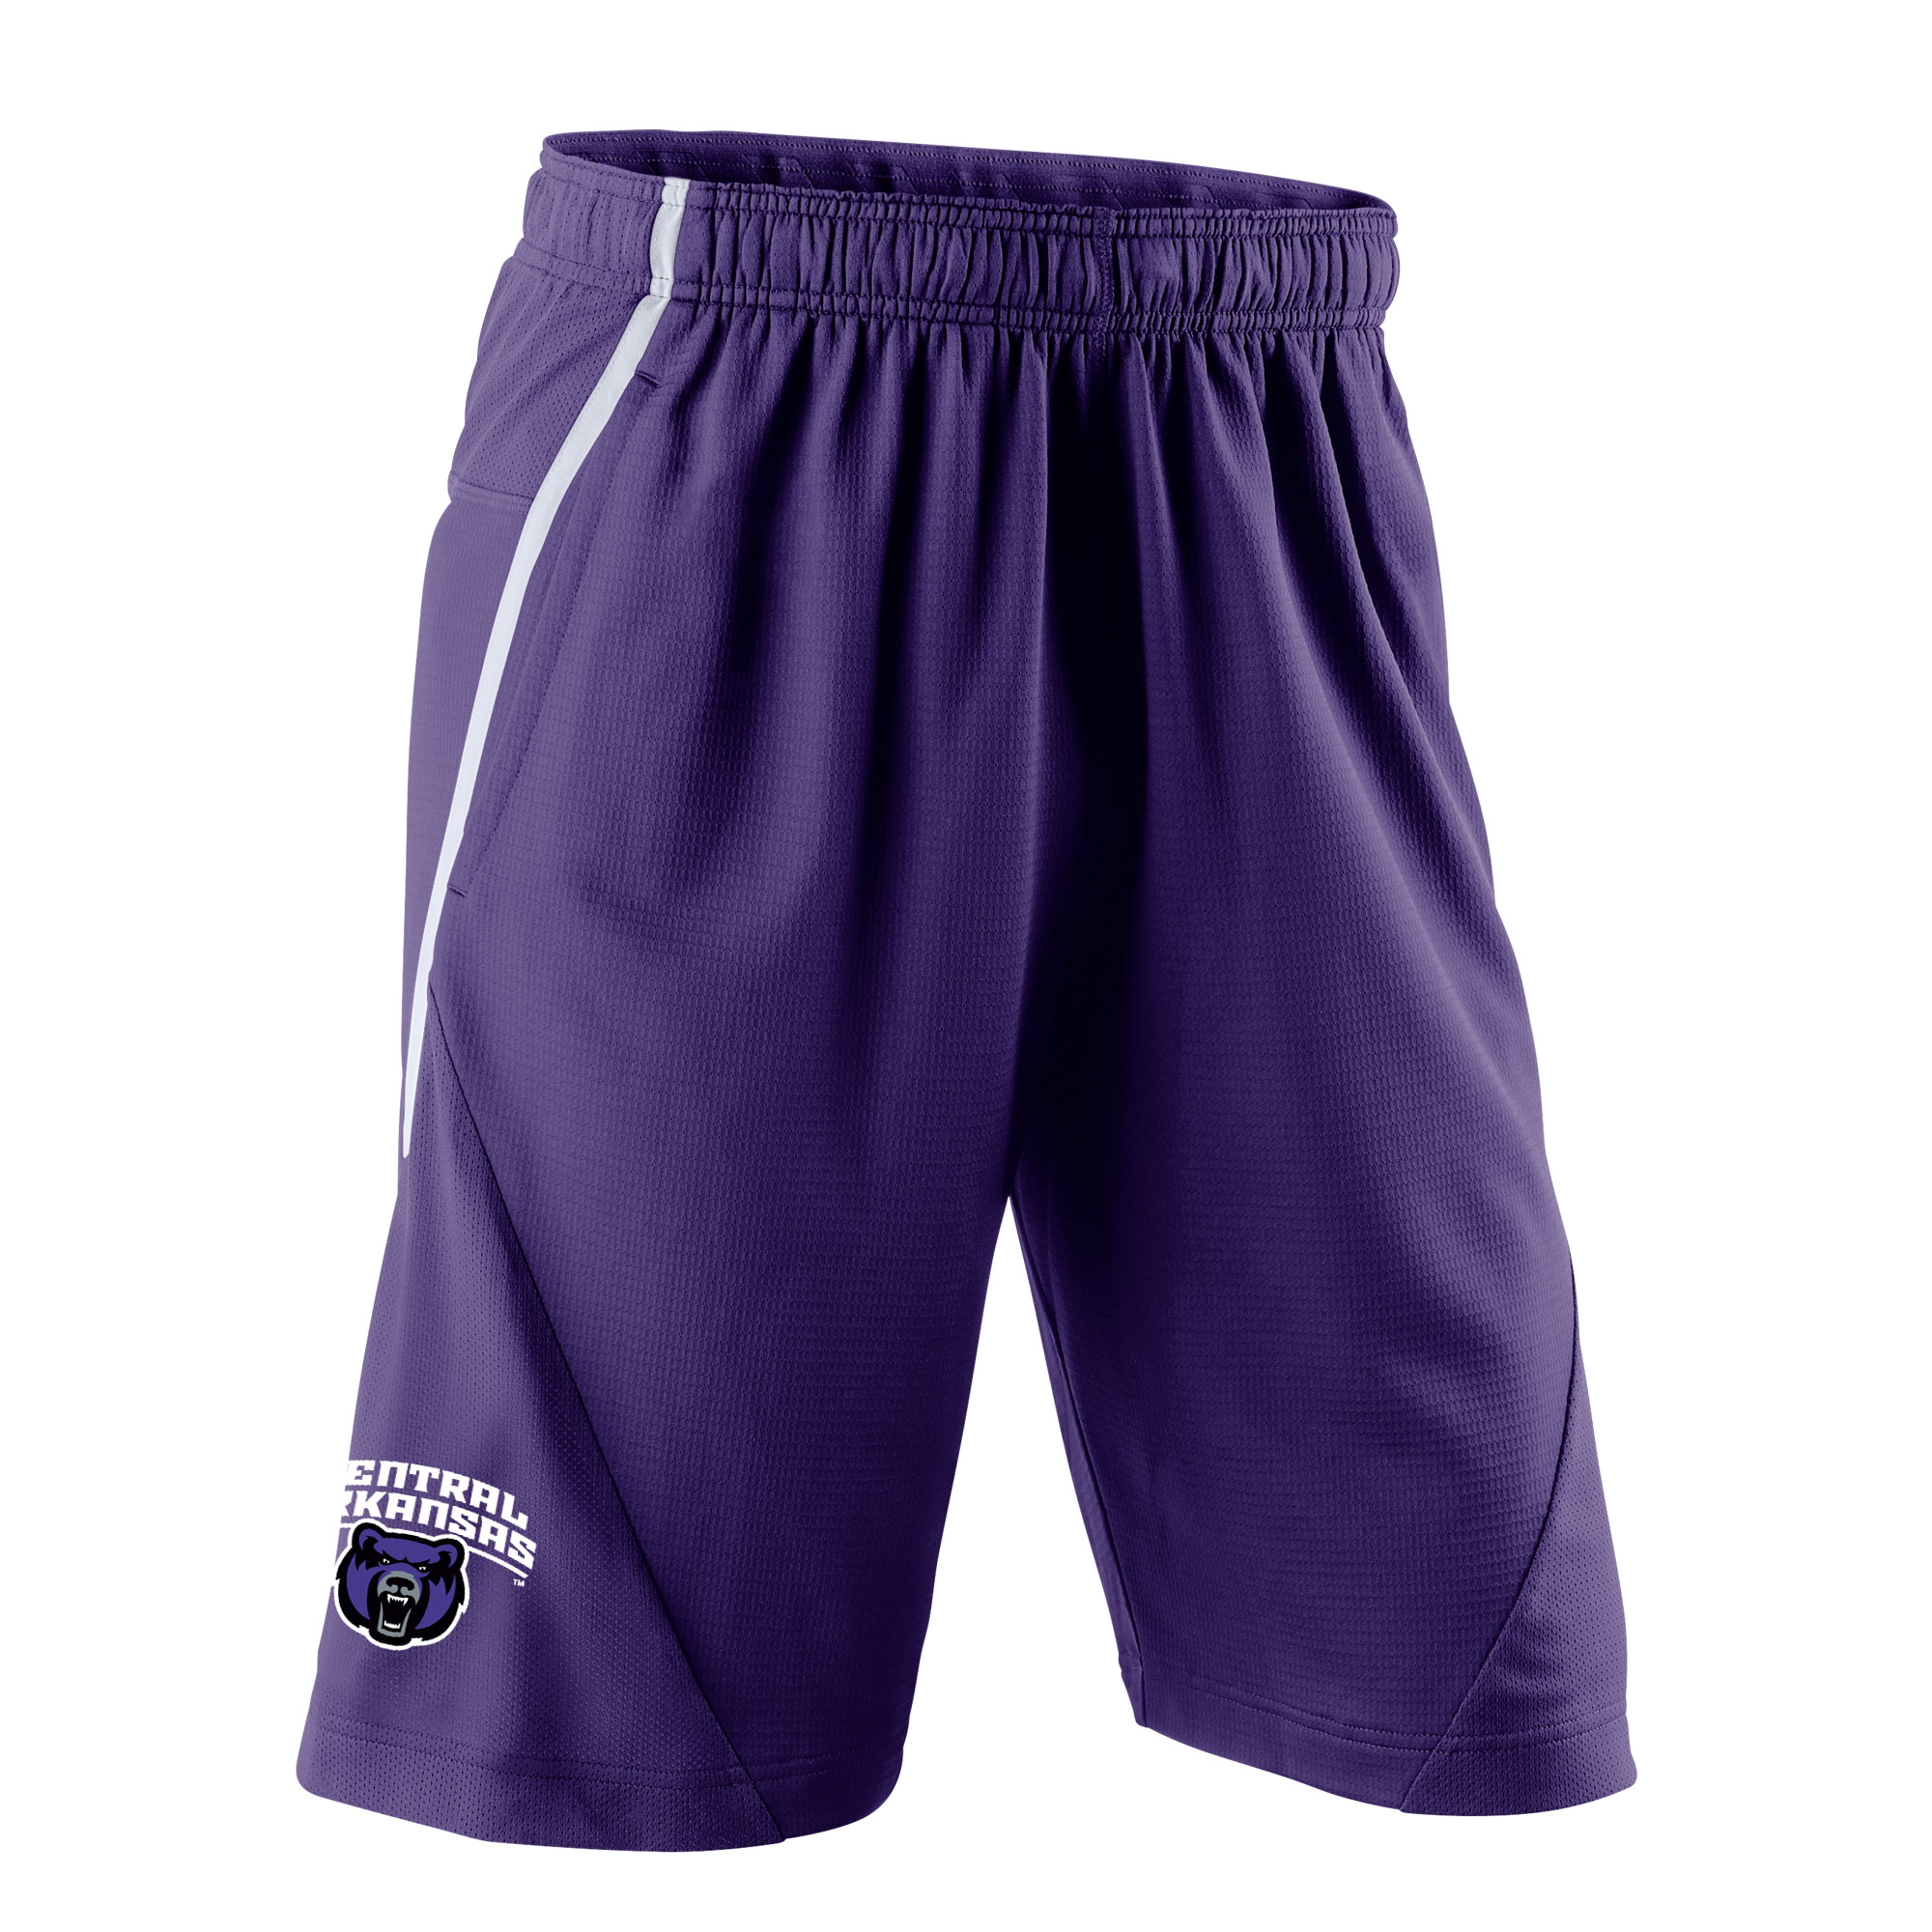 Men's Fly XL 5.0 Shorts